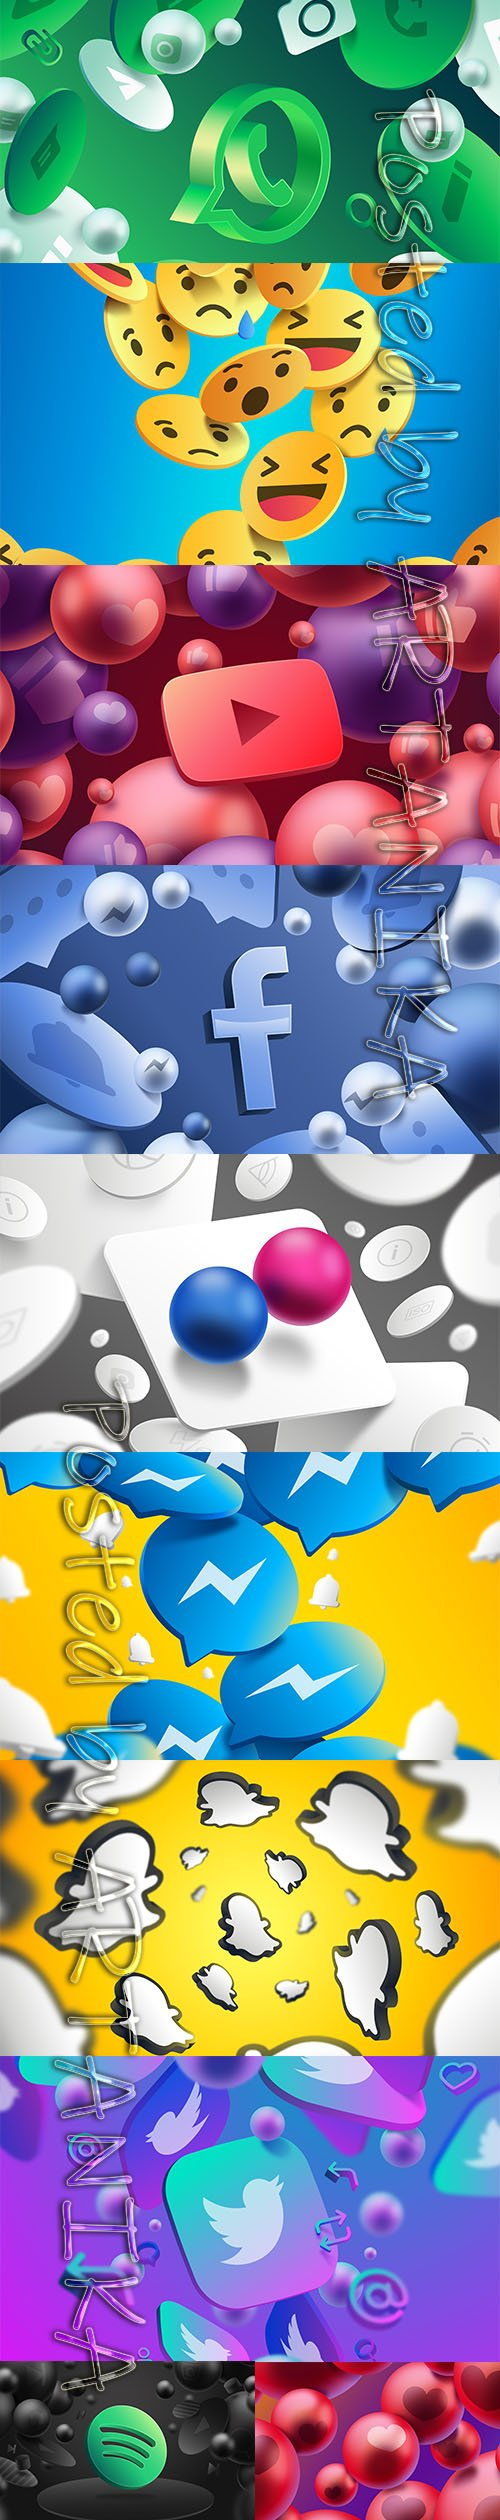 Abstract Background with Social Logos